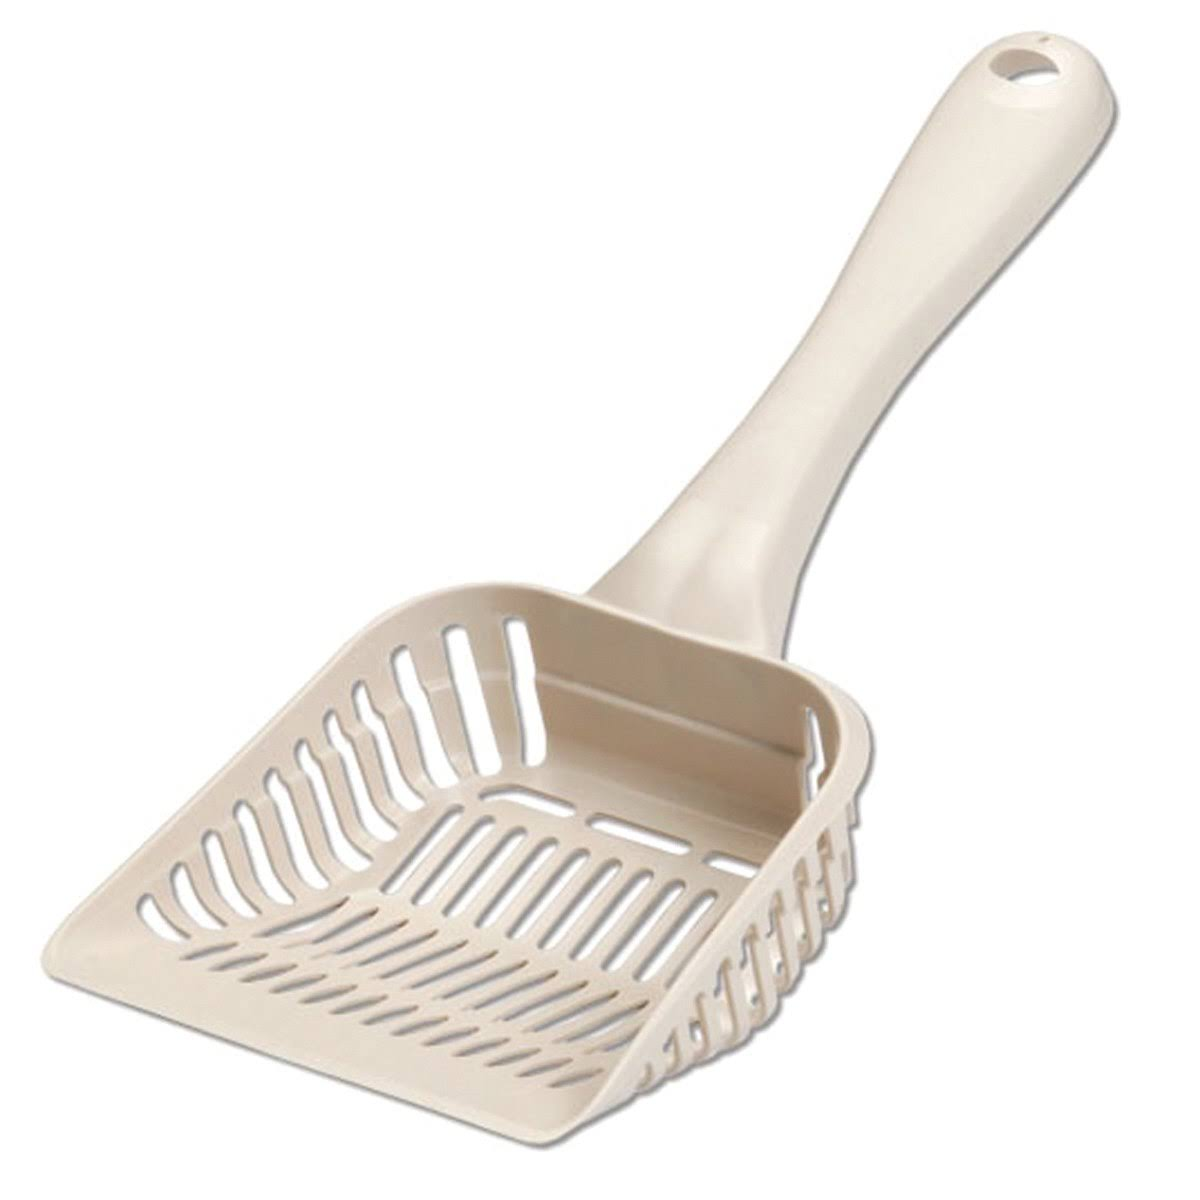 "Petmate Litter Scoop - White, 17.1""x6.9""x13.5"""